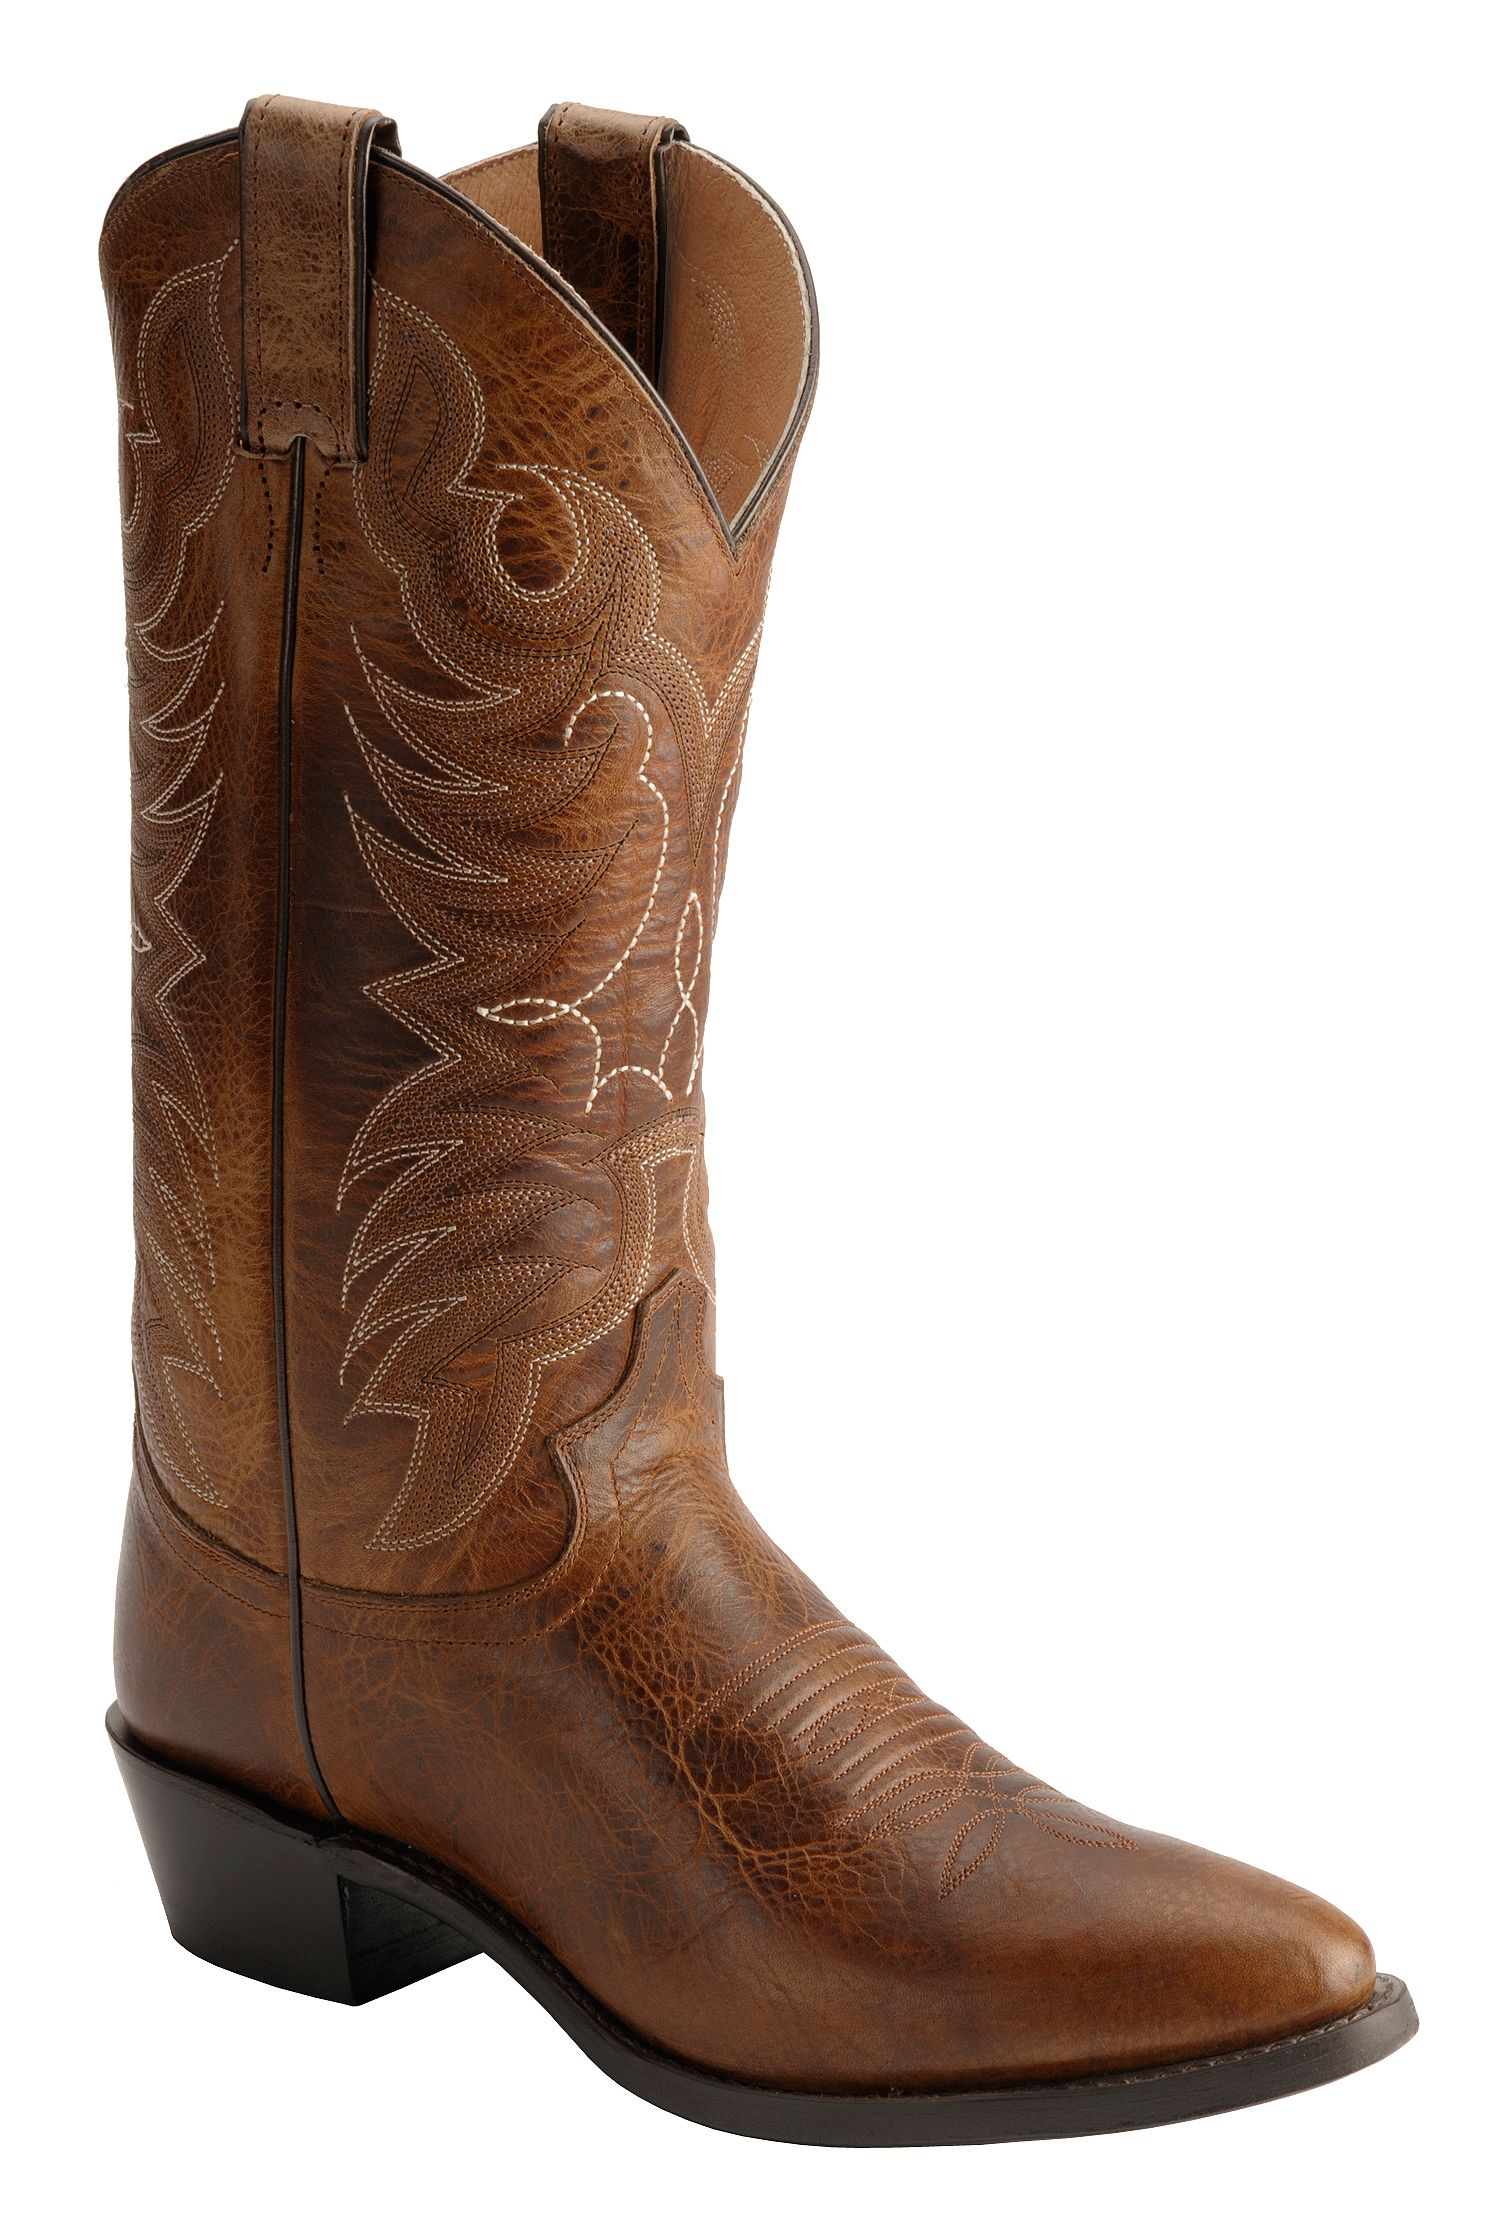 Justin Traditional Leather Western Cowboy Boots - Medium Toe ...